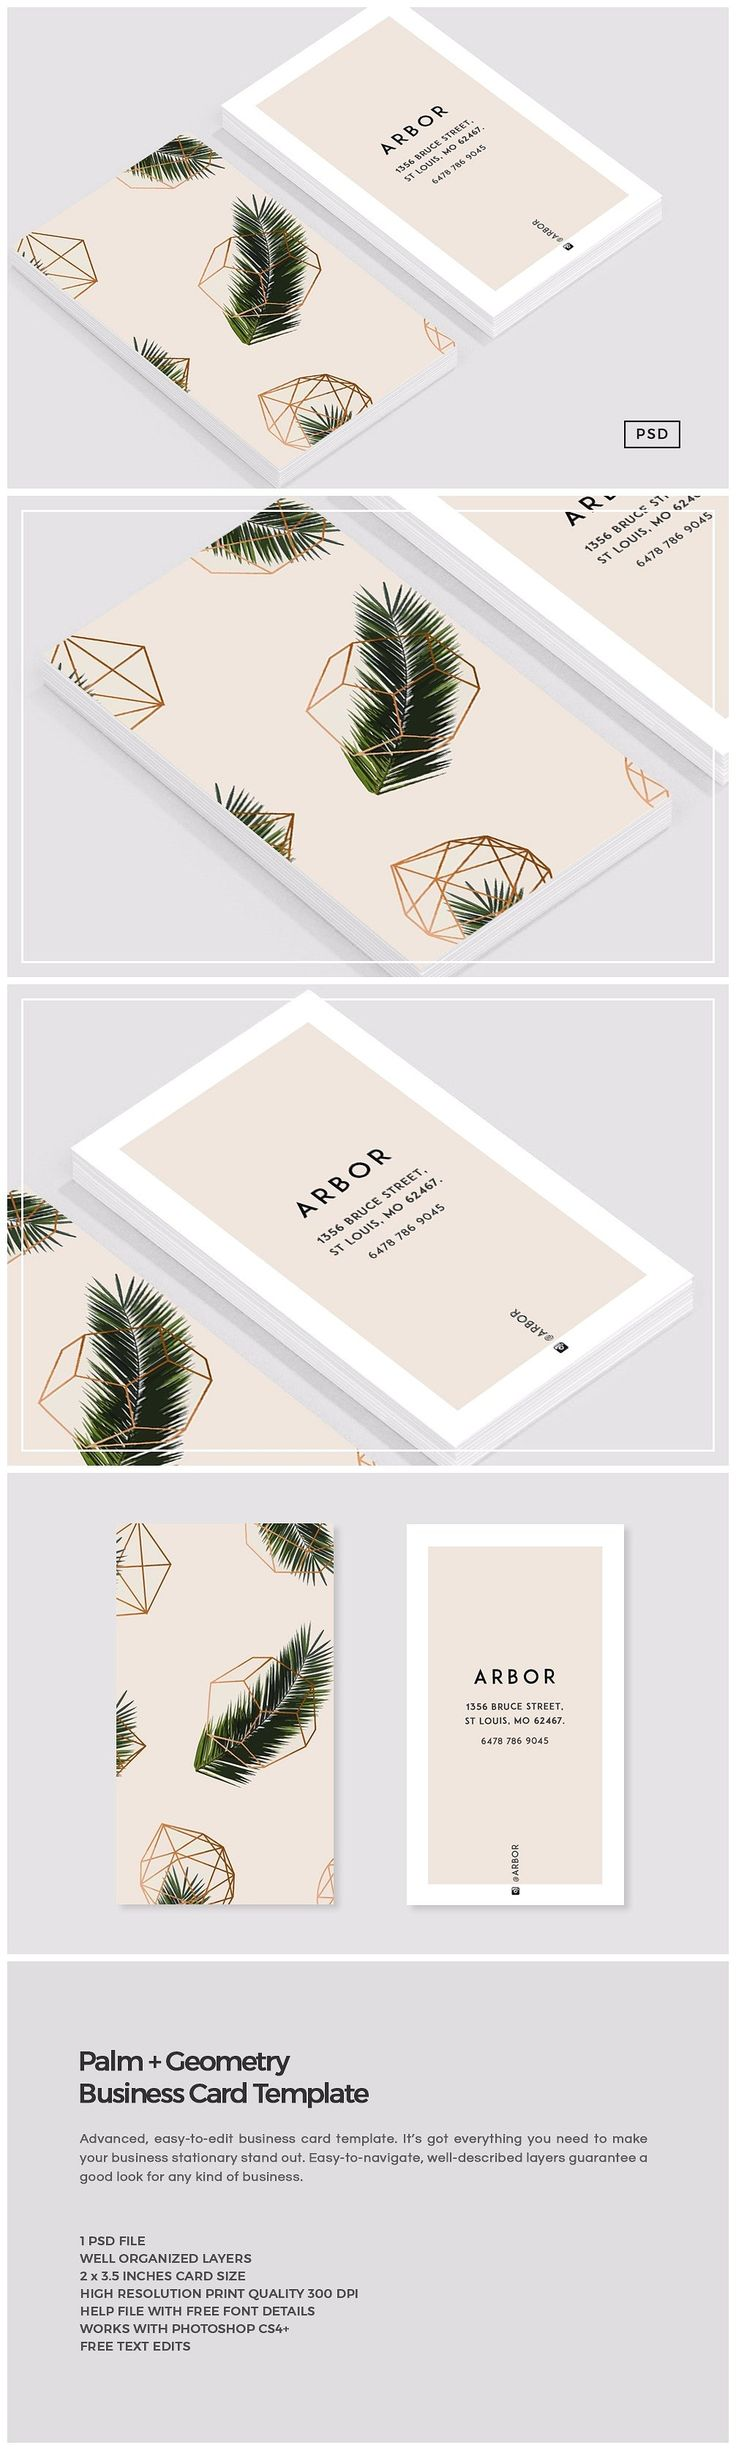 The 25+ best Business card maker ideas on Pinterest | Art business ...